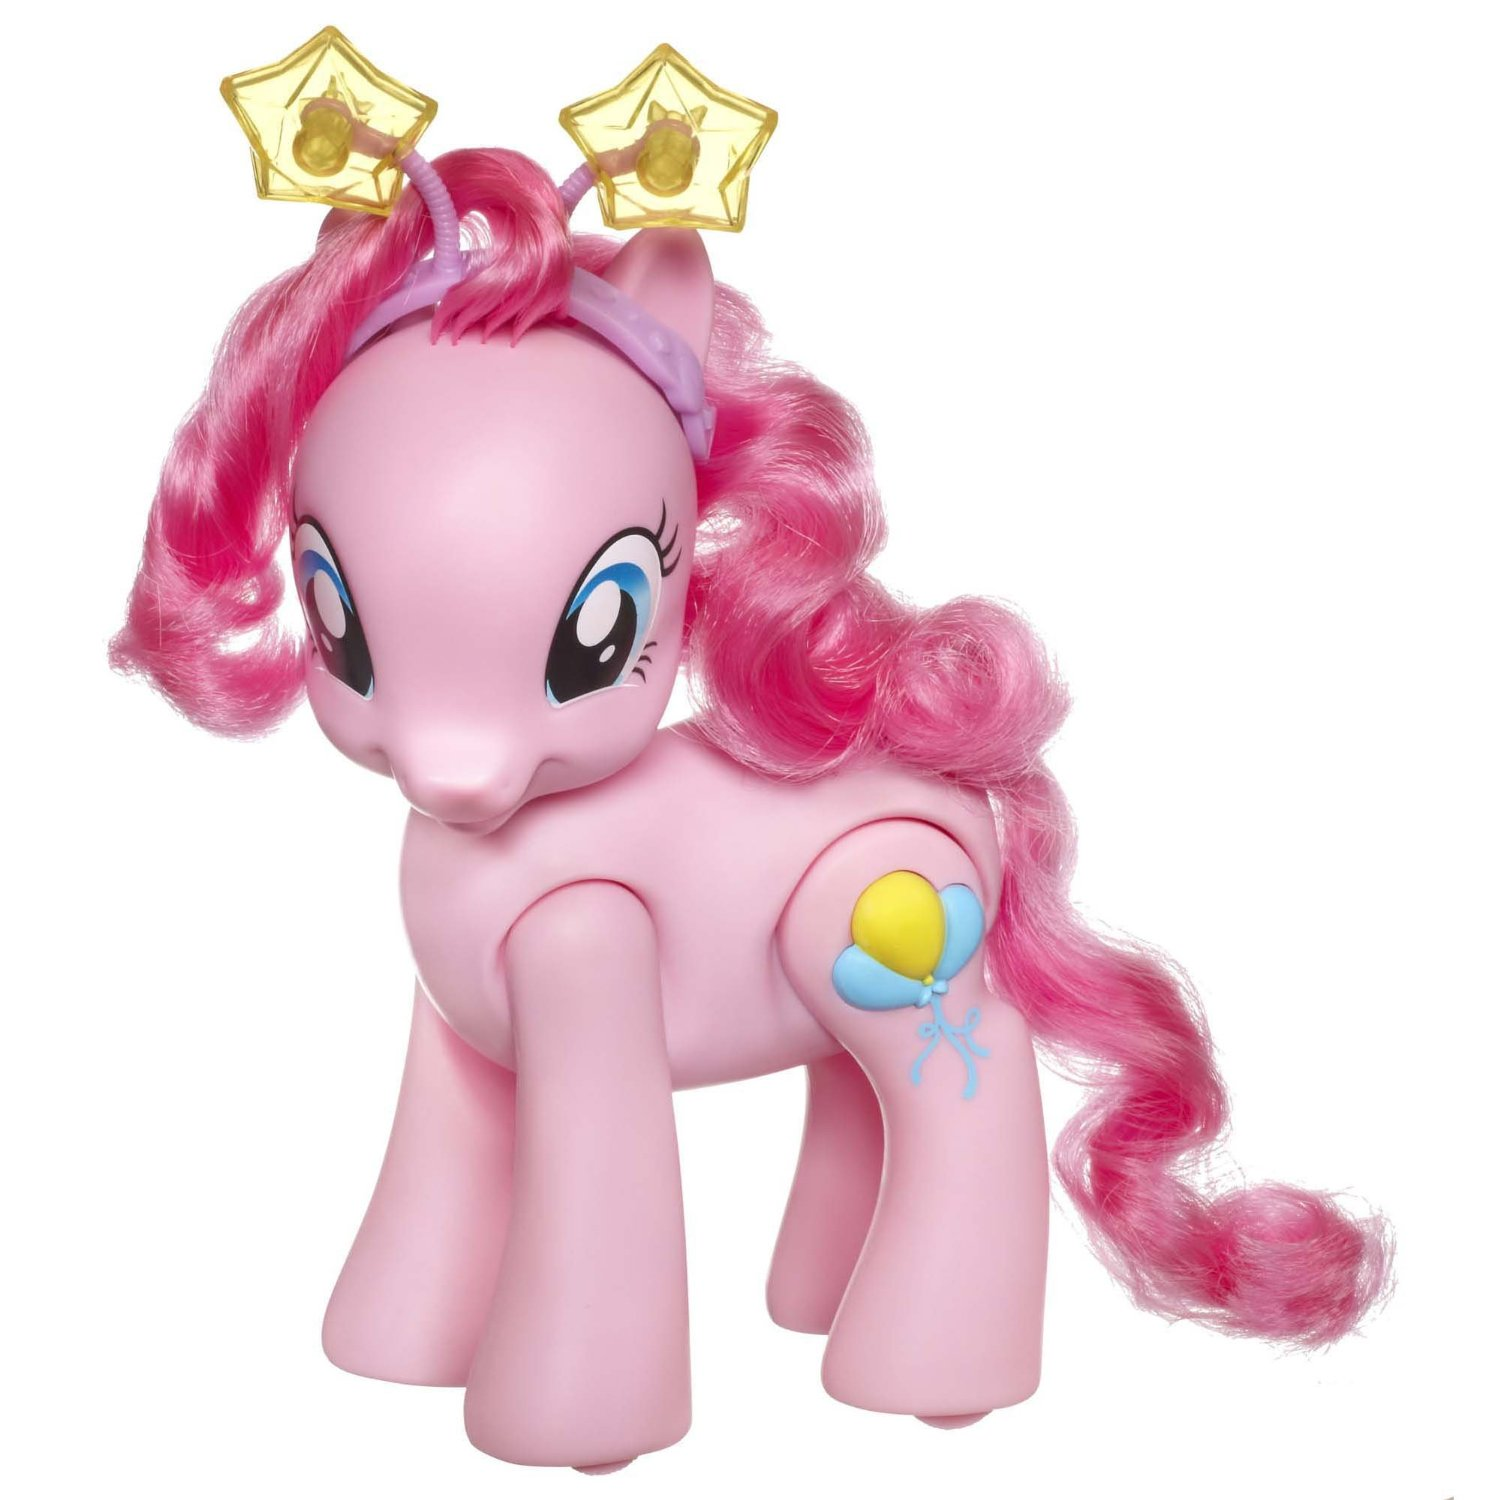 My Little Pony Toys : My little pony toys walking talking pinkie pie figure at